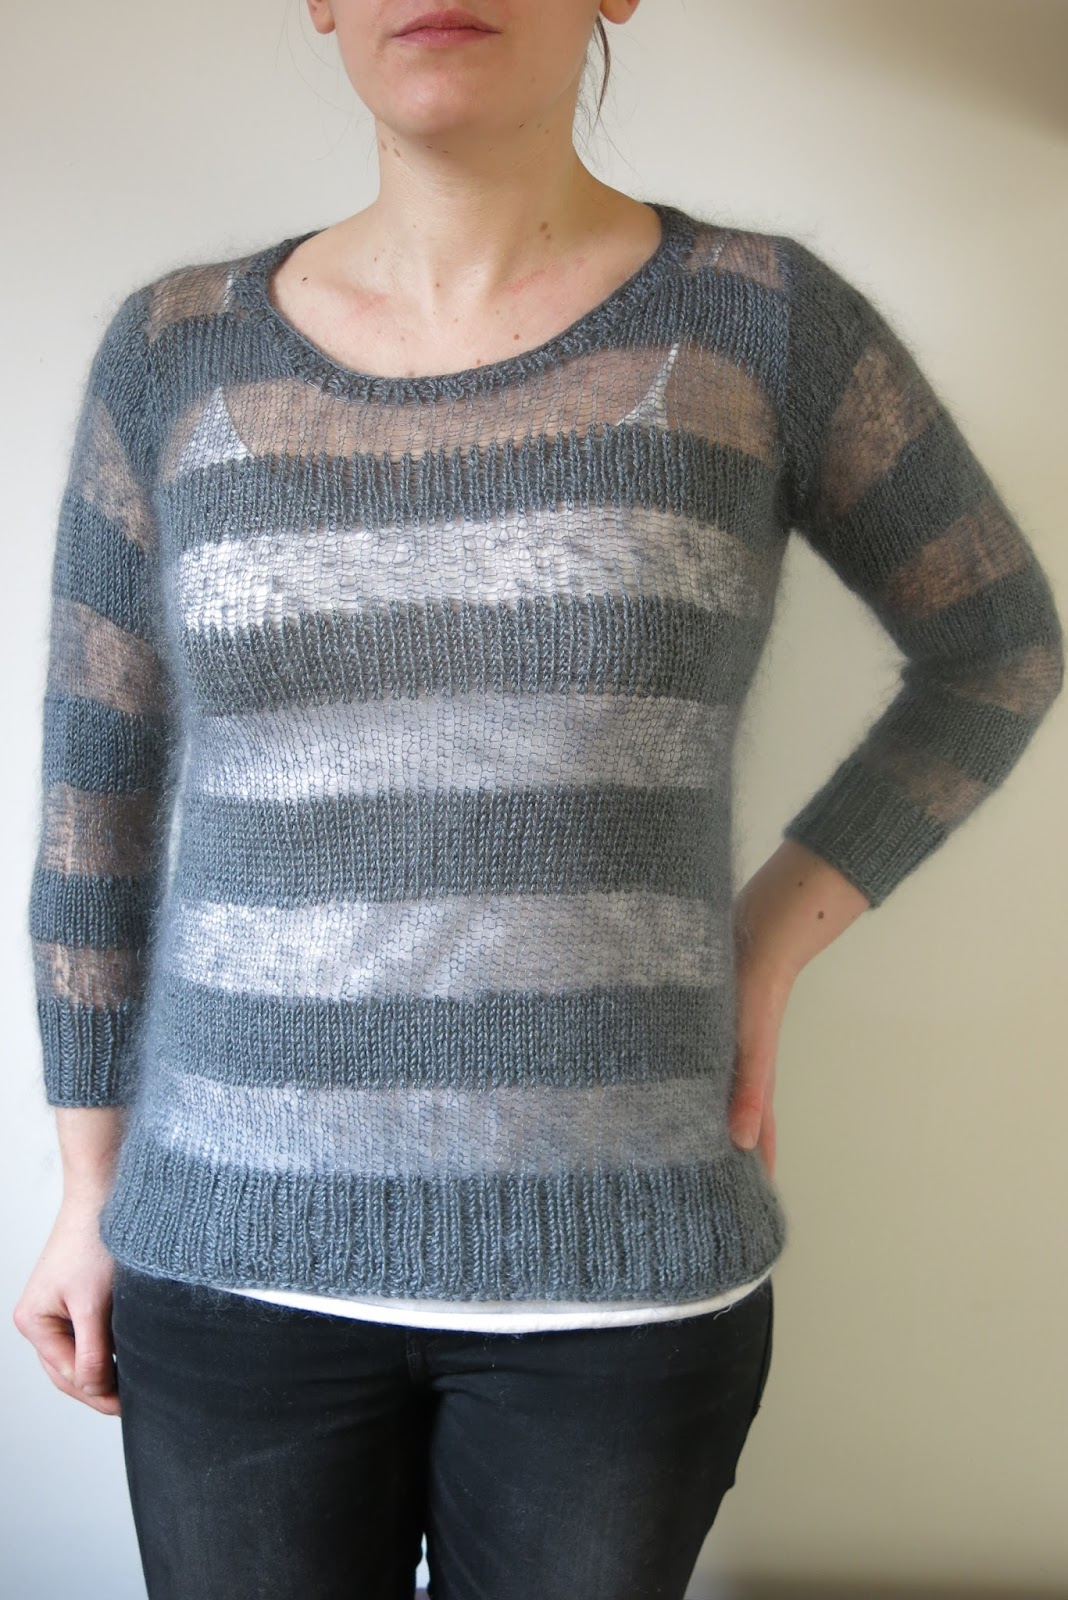 Littletheorem pattern gallery we alternate between airy lightweight mohair silk lace yarn used by itself and held together with a buttery soft 4ply blend of merino and bankloansurffo Gallery